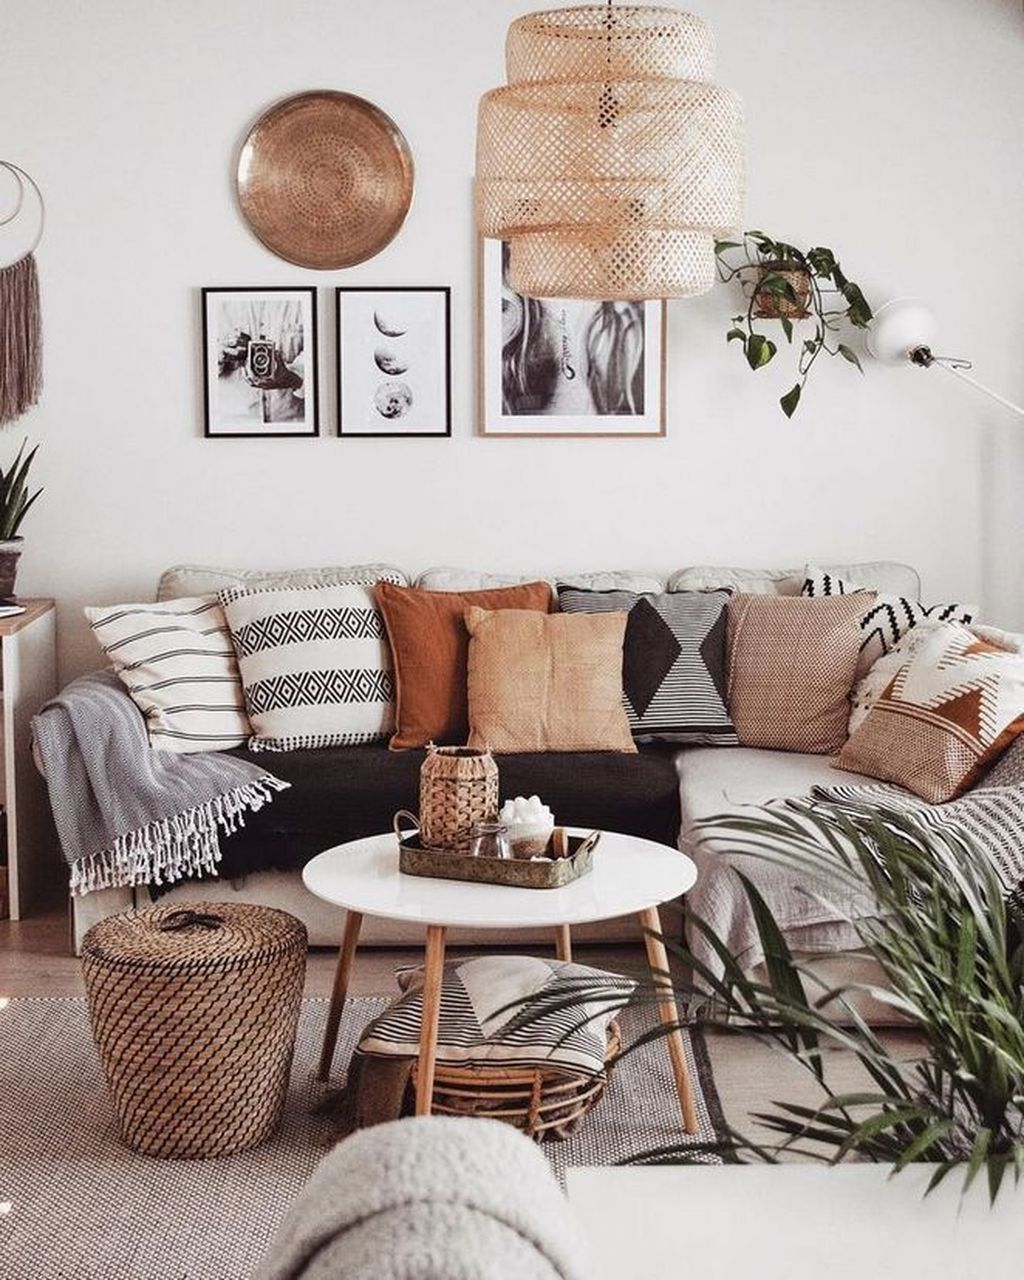 20+ Creative Wood Pallet Ideas To Try Right Now en 20